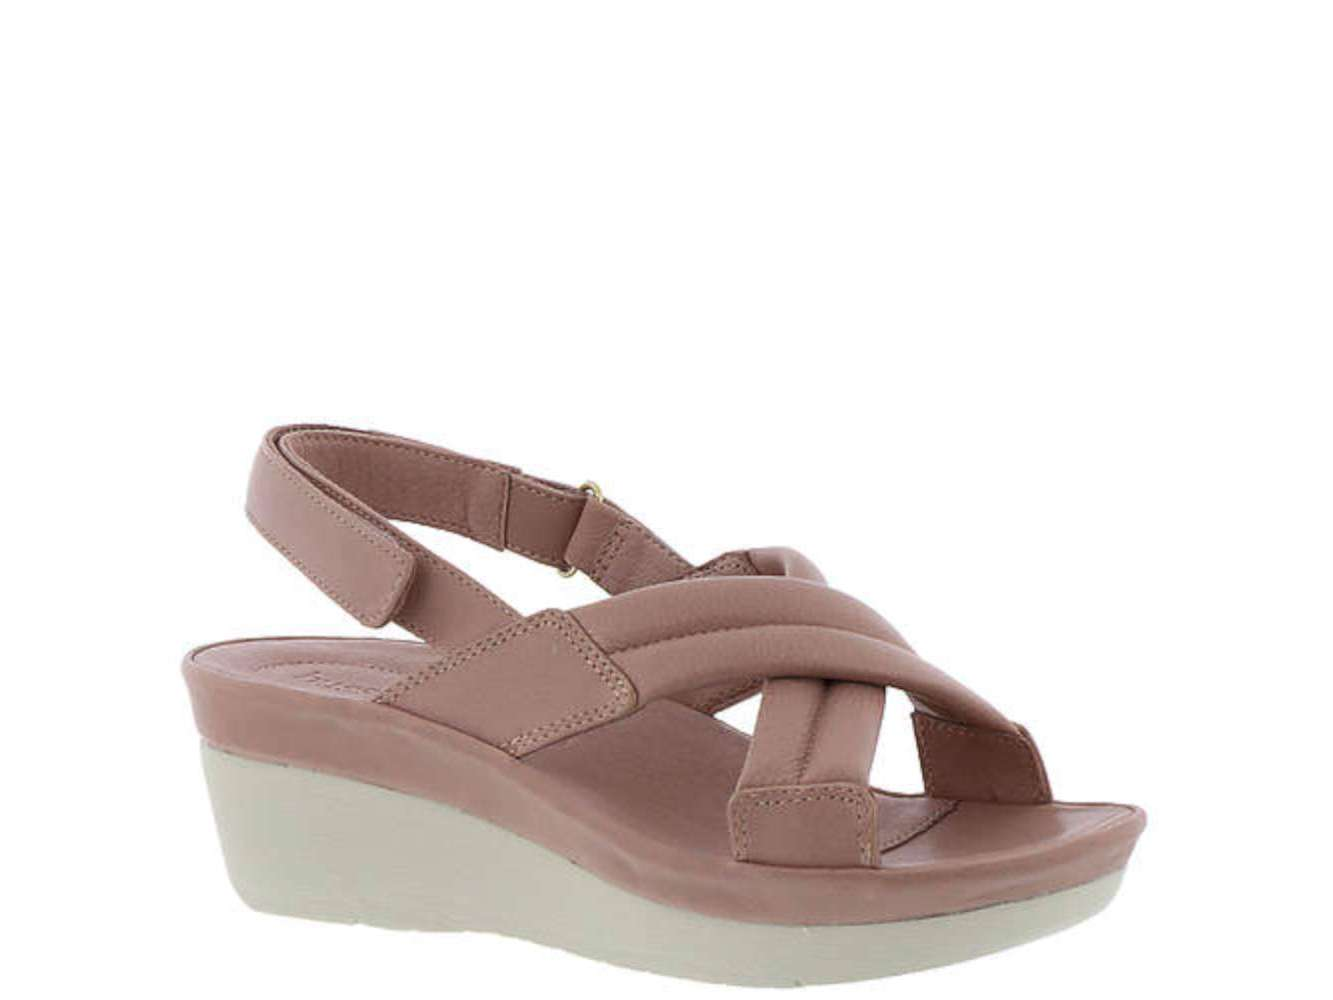 c1b3a81d14a BUSSOLA Womens Goldie Leather Open Toe Casual Slingback ...